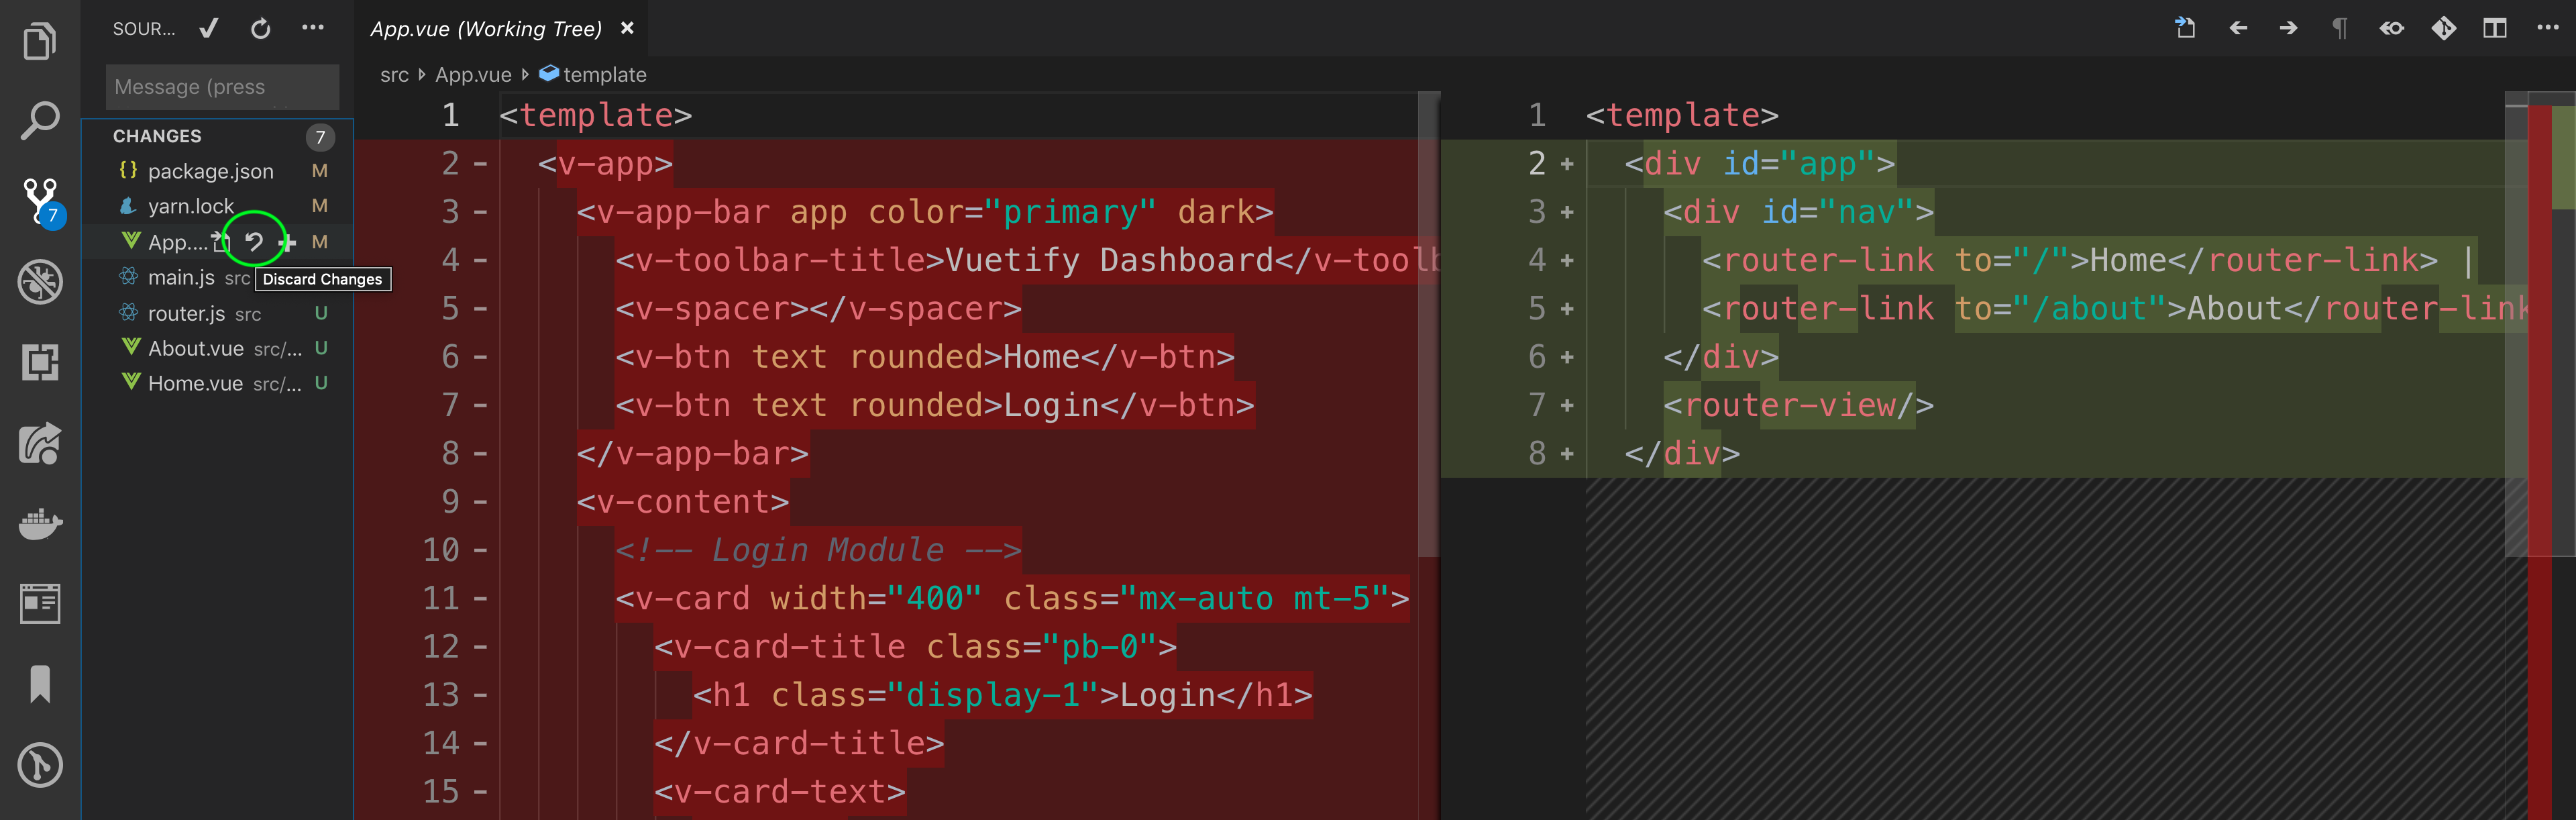 Screenshot of Discard change icon on VS Code